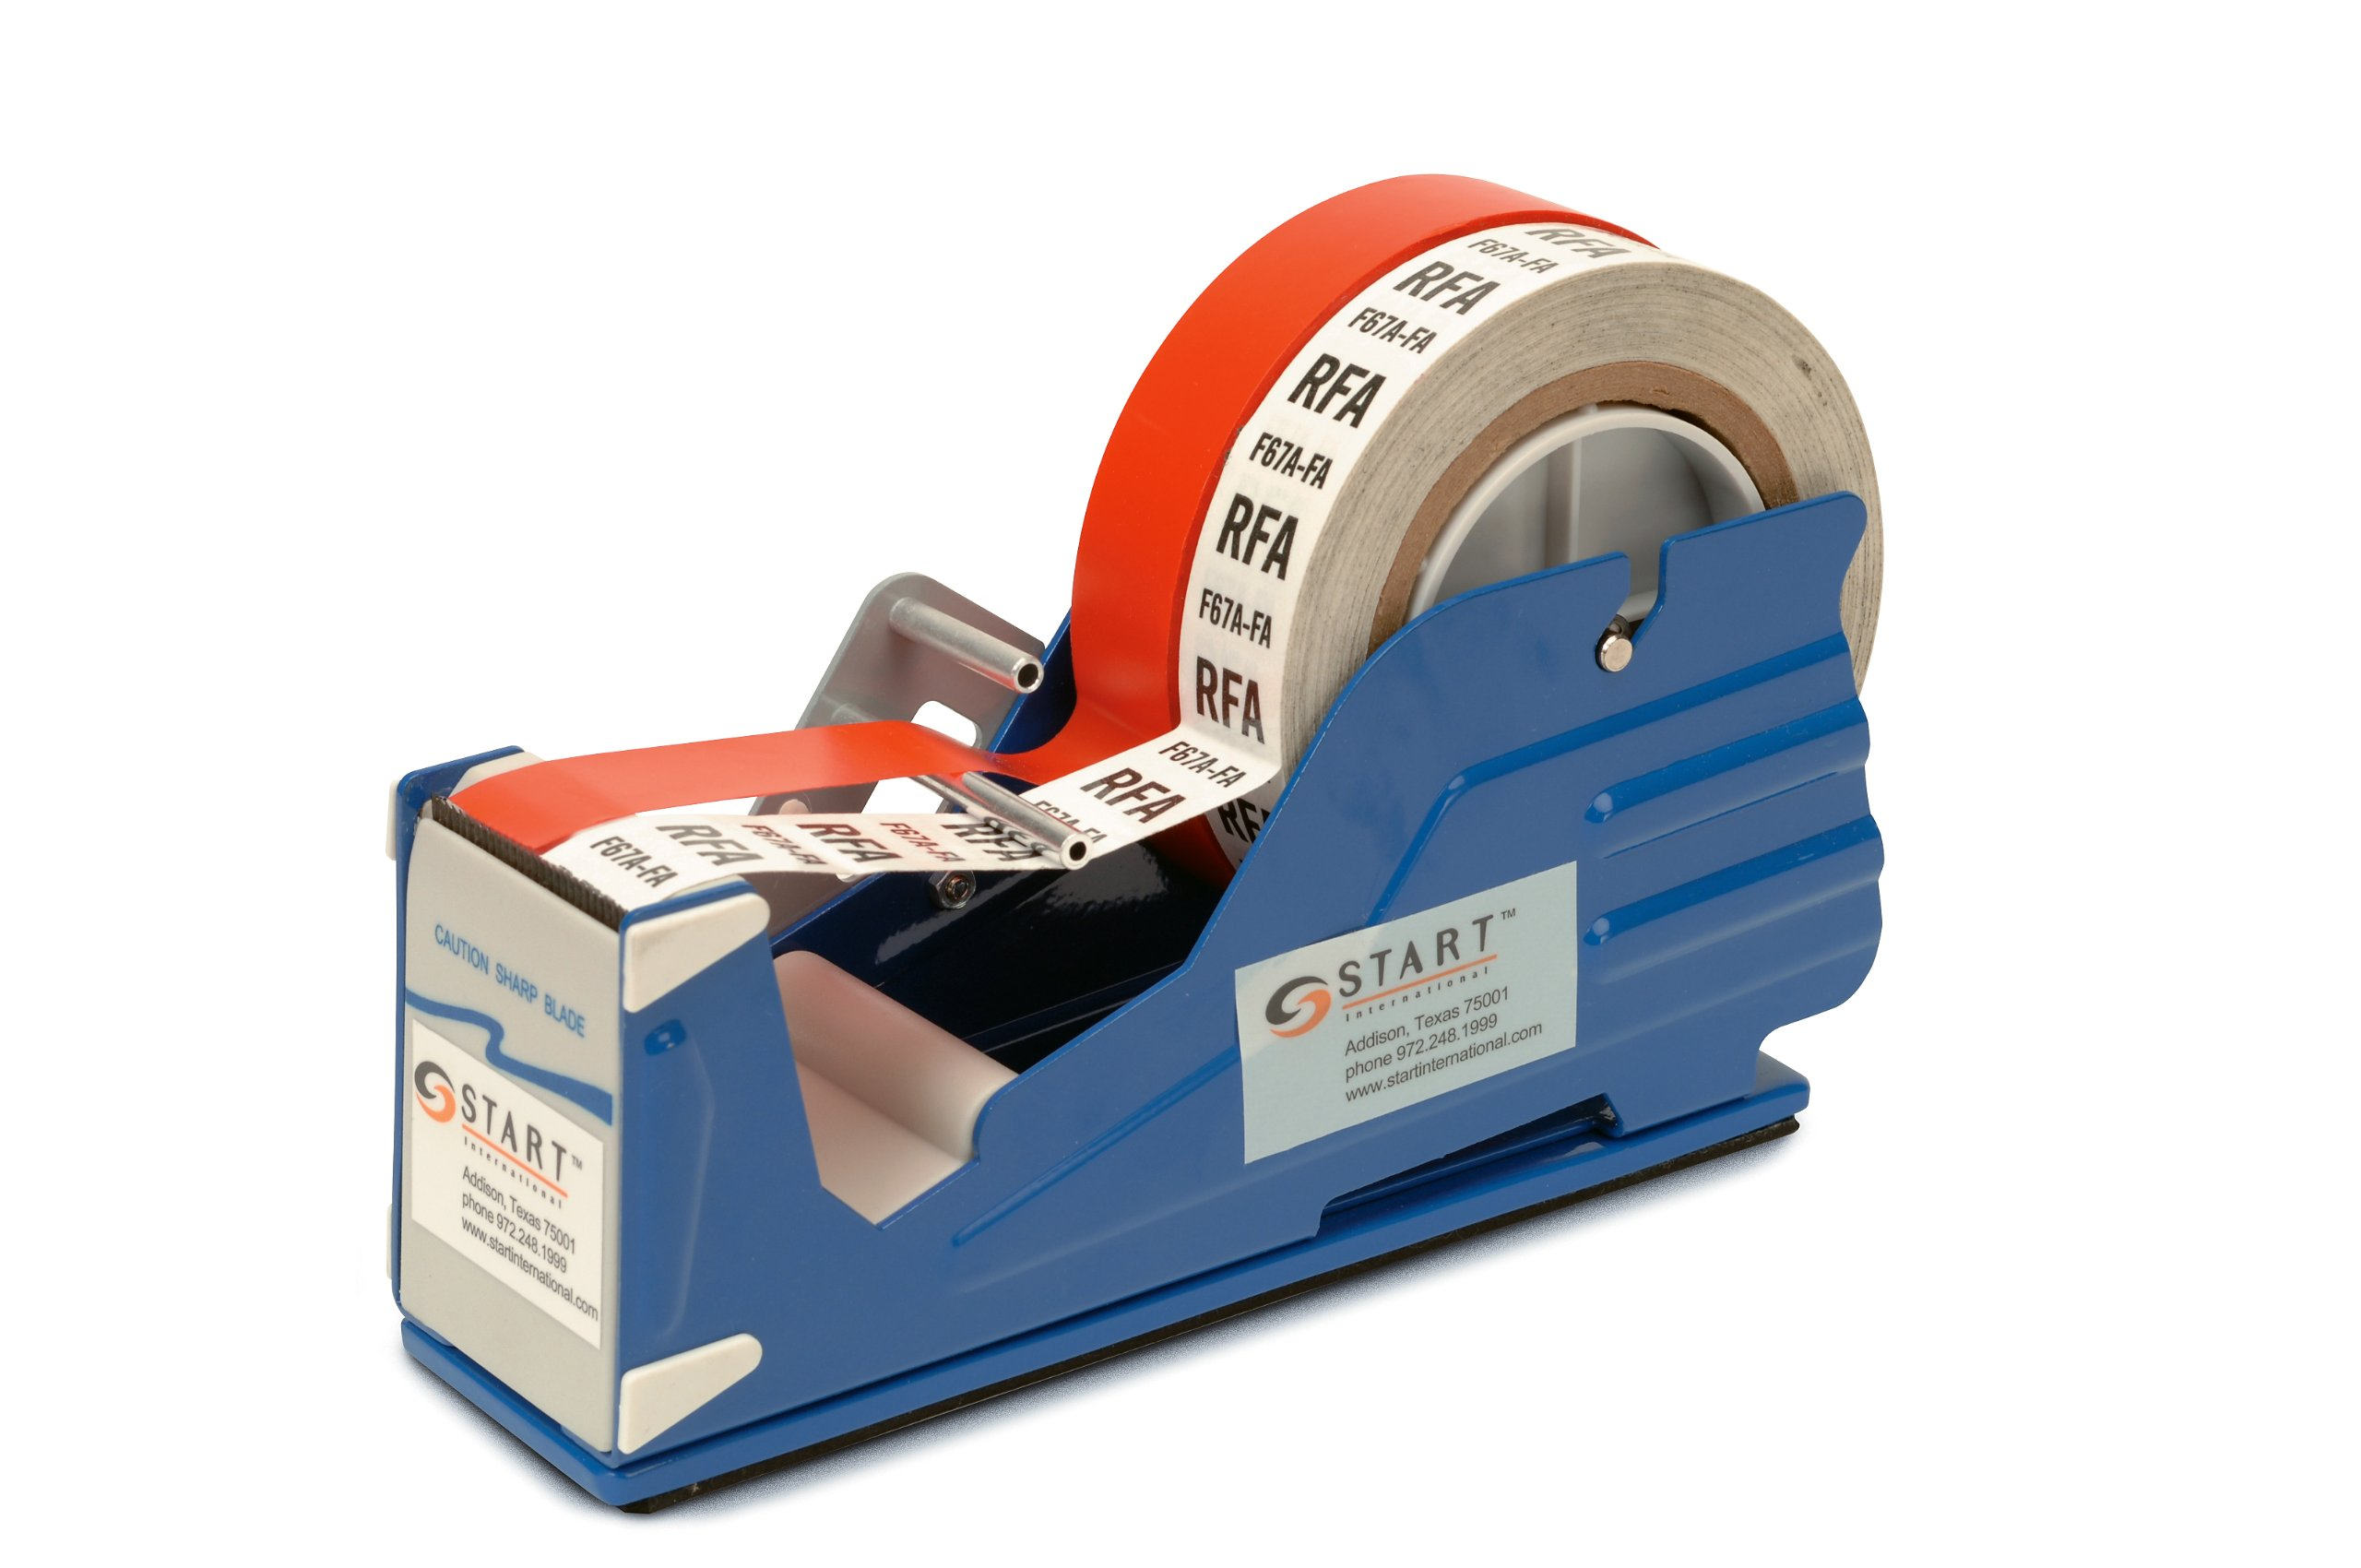 START International SL7326 Multi Roll Tape Dispenser with Baked Enamel Finish, 9.37'' Length x 2.750'' Width x 5.250'' Depth